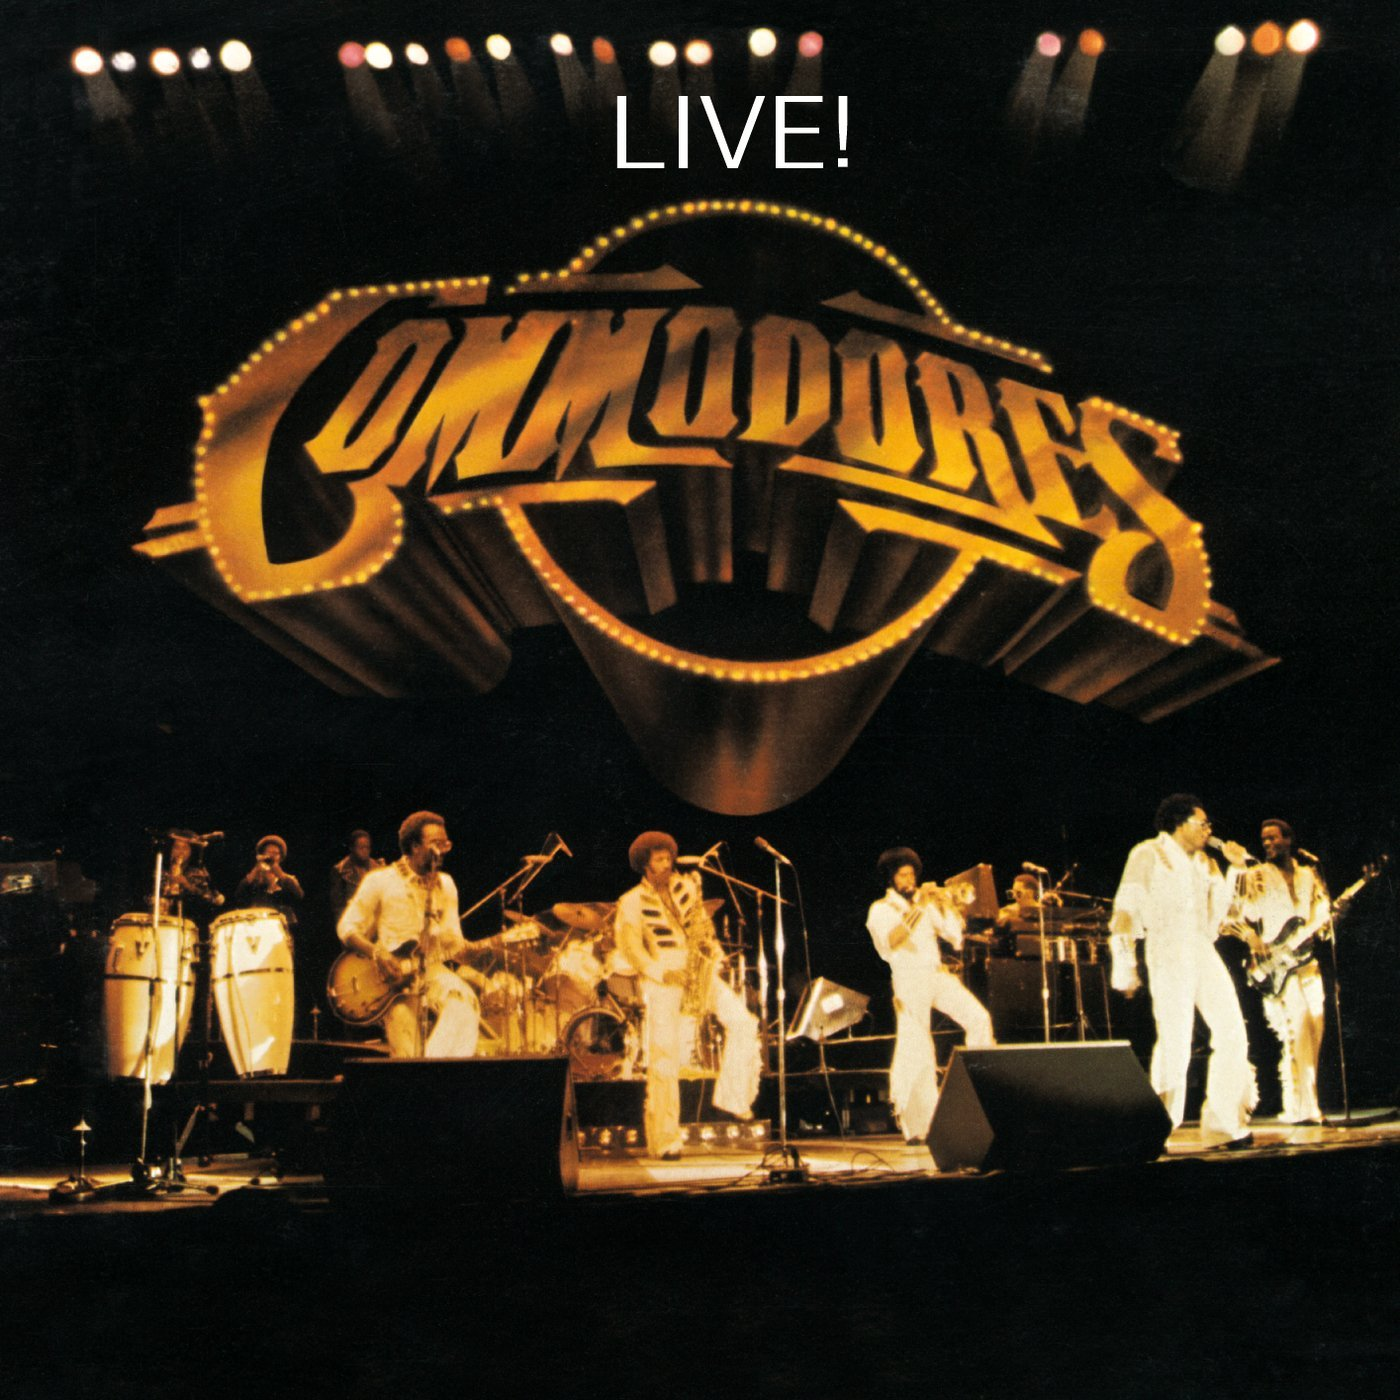 Commodores_The_Live.jpg